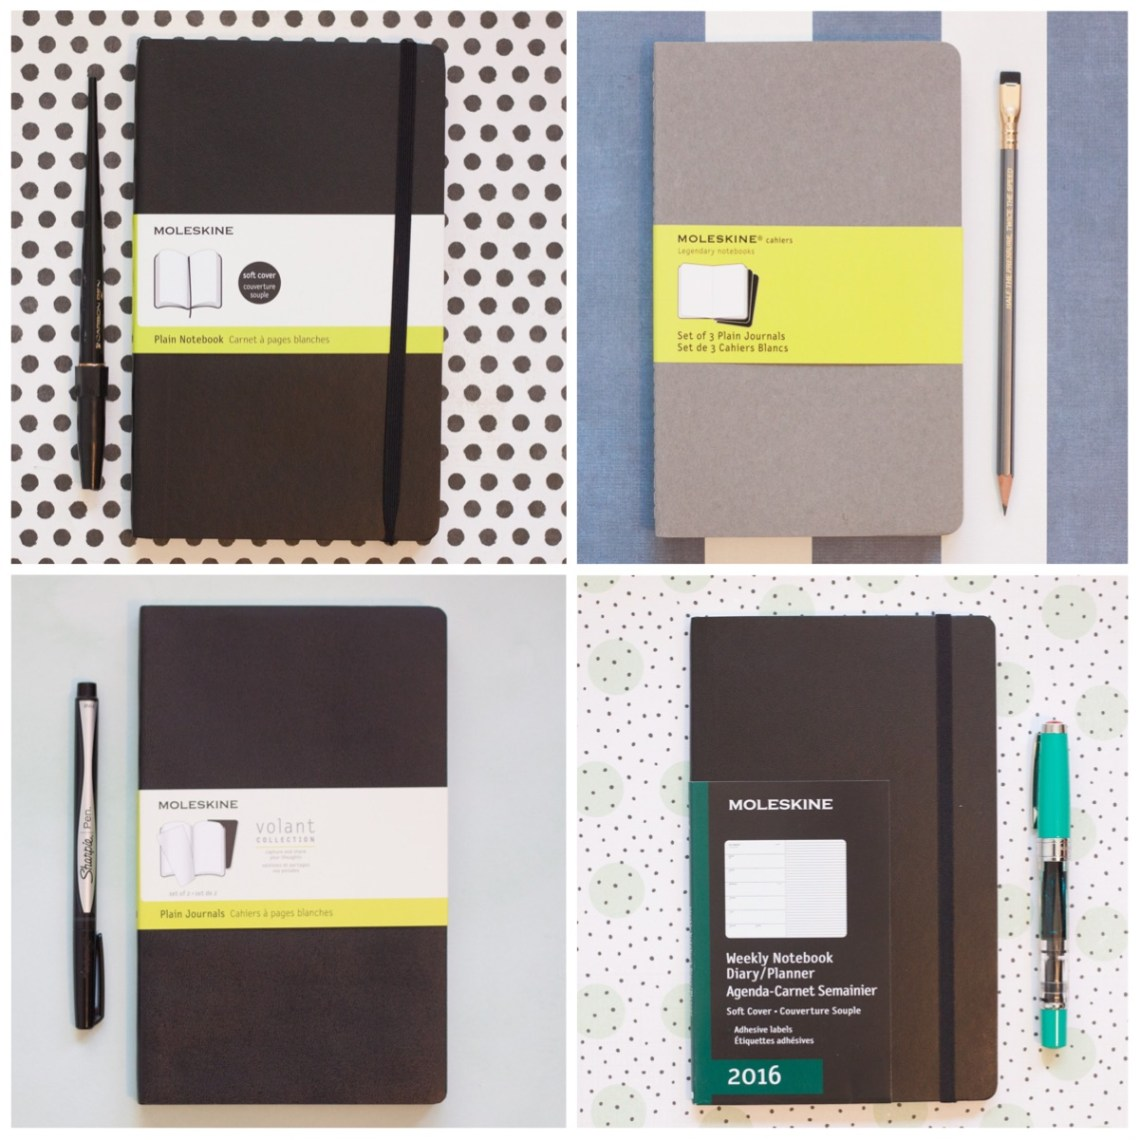 moleskine covers